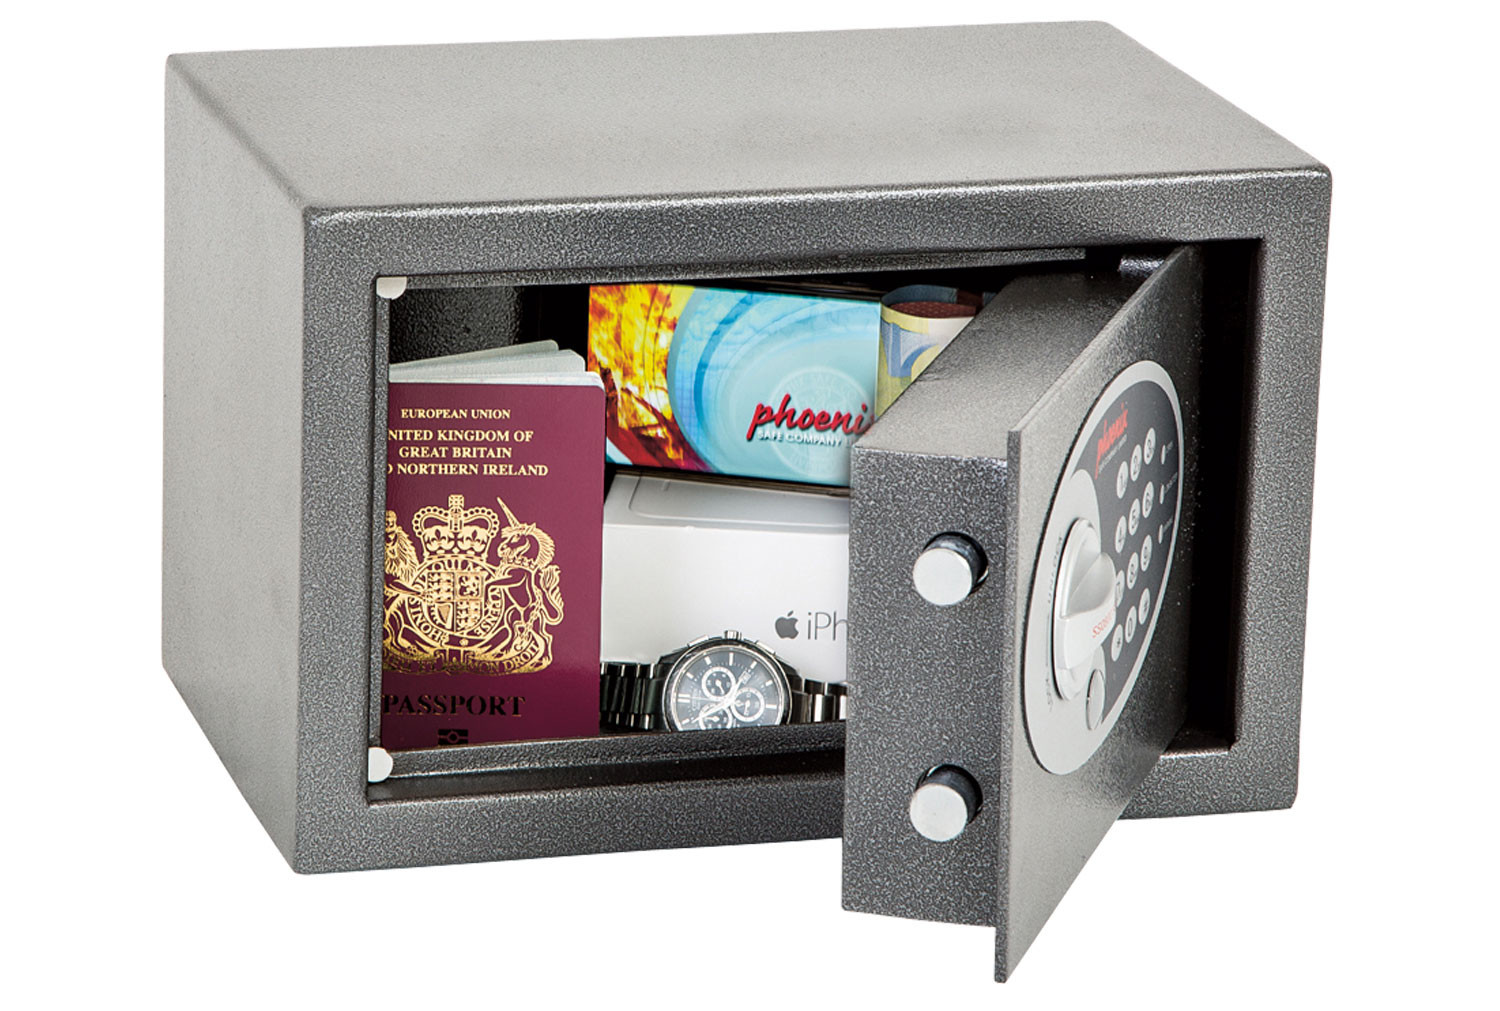 Phoenix Vela SS0801E Home Office Safe With Electronic Lock (10ltrs)